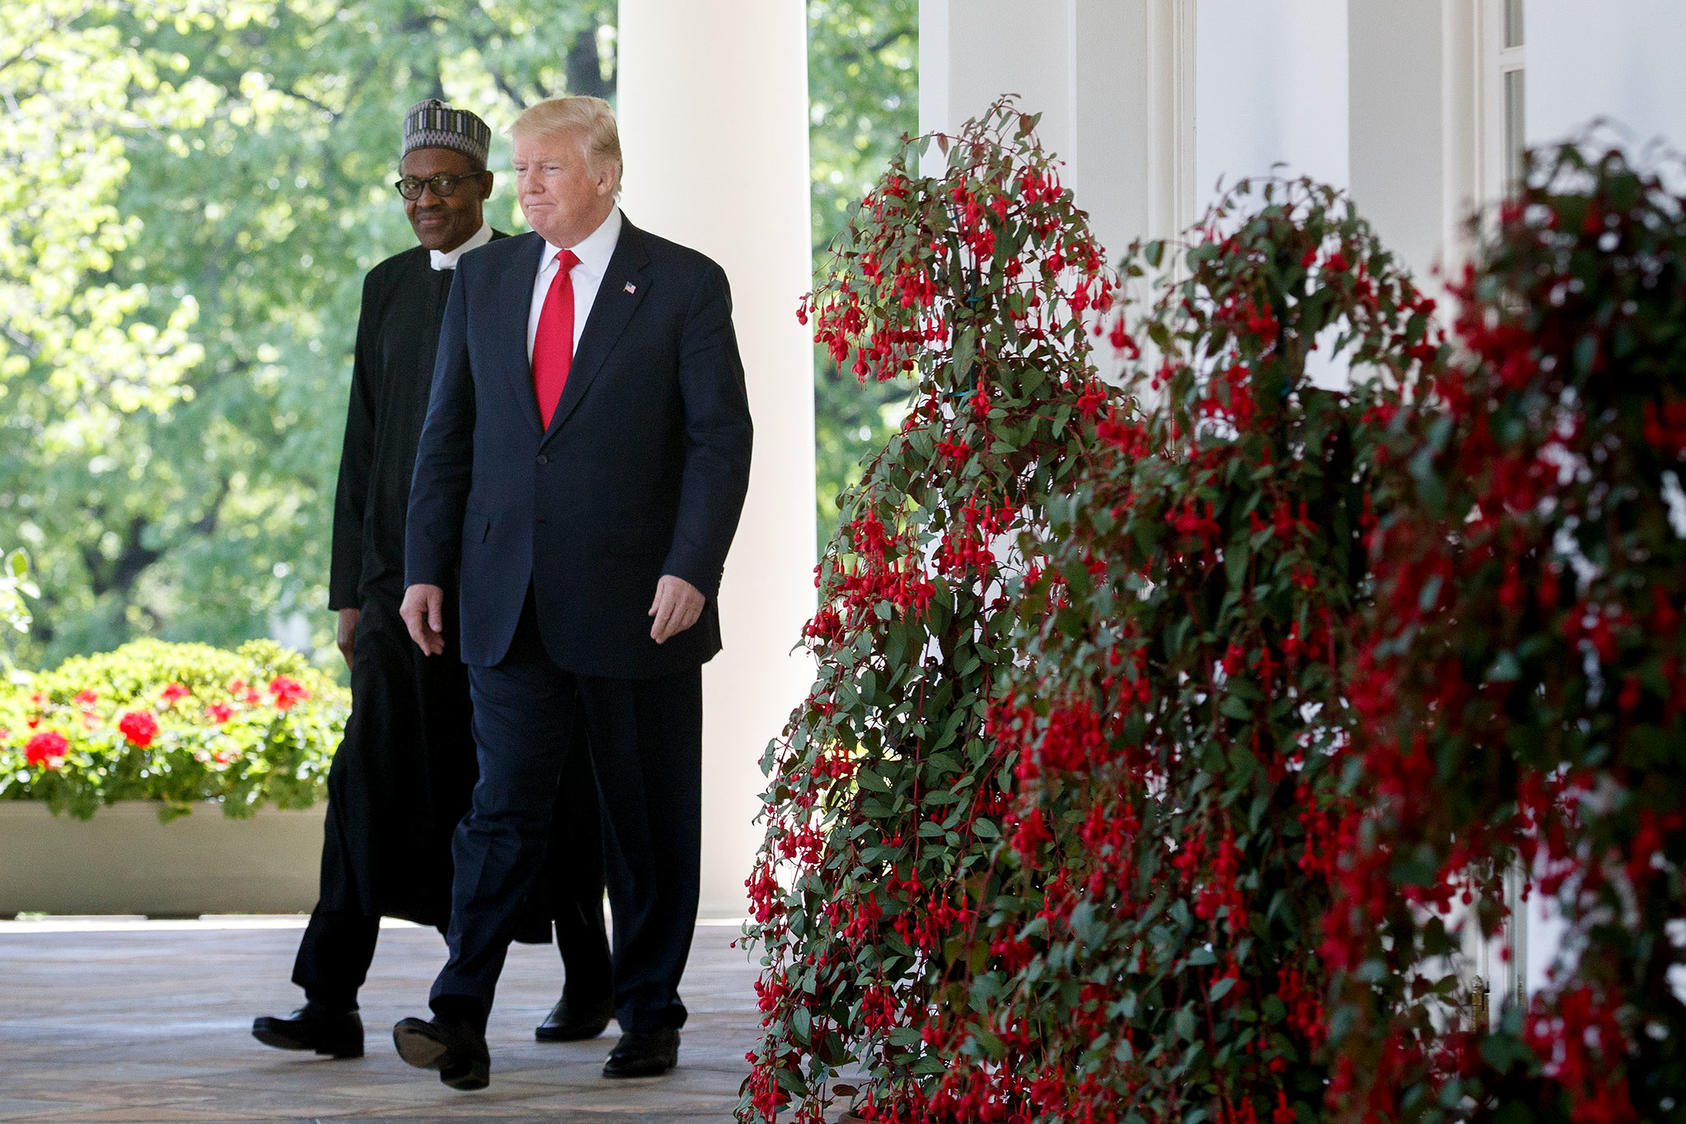 President Donald Trump and Nigerian President Muhammadu Buhari in the Rose Garden at the White House, where they held a joint news conference, in Washington, April 30, 2018. (Tom Brenner/The New York Times)